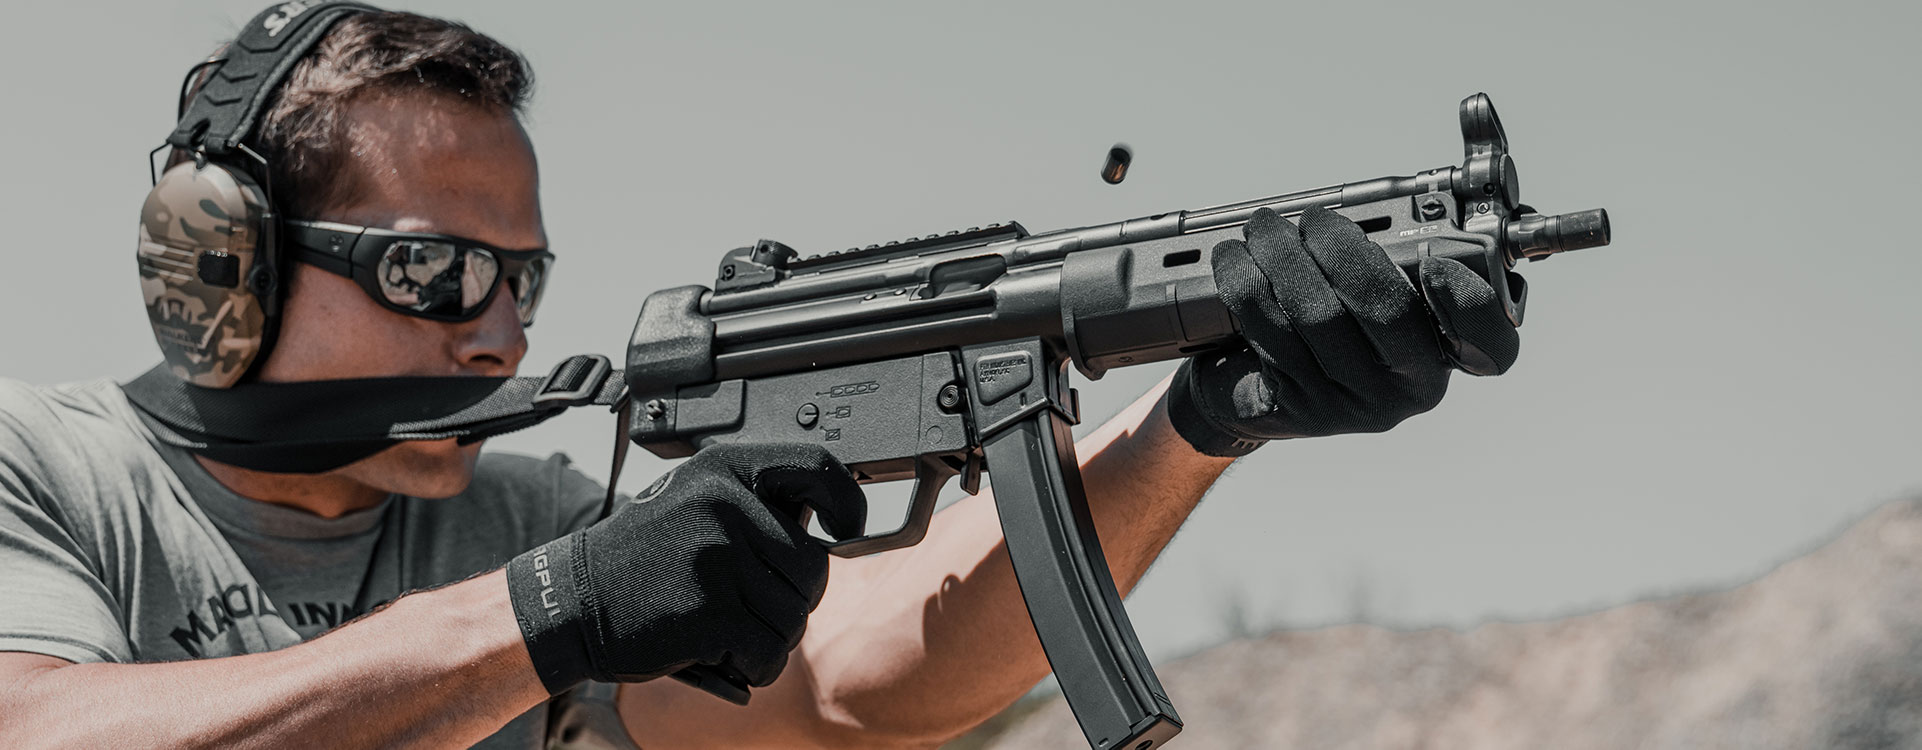 SL Hand Guard MP5 on a HK pistol with SL Grip Module, ESK, and Magpul Sling being fired by a man with Magpul glasses